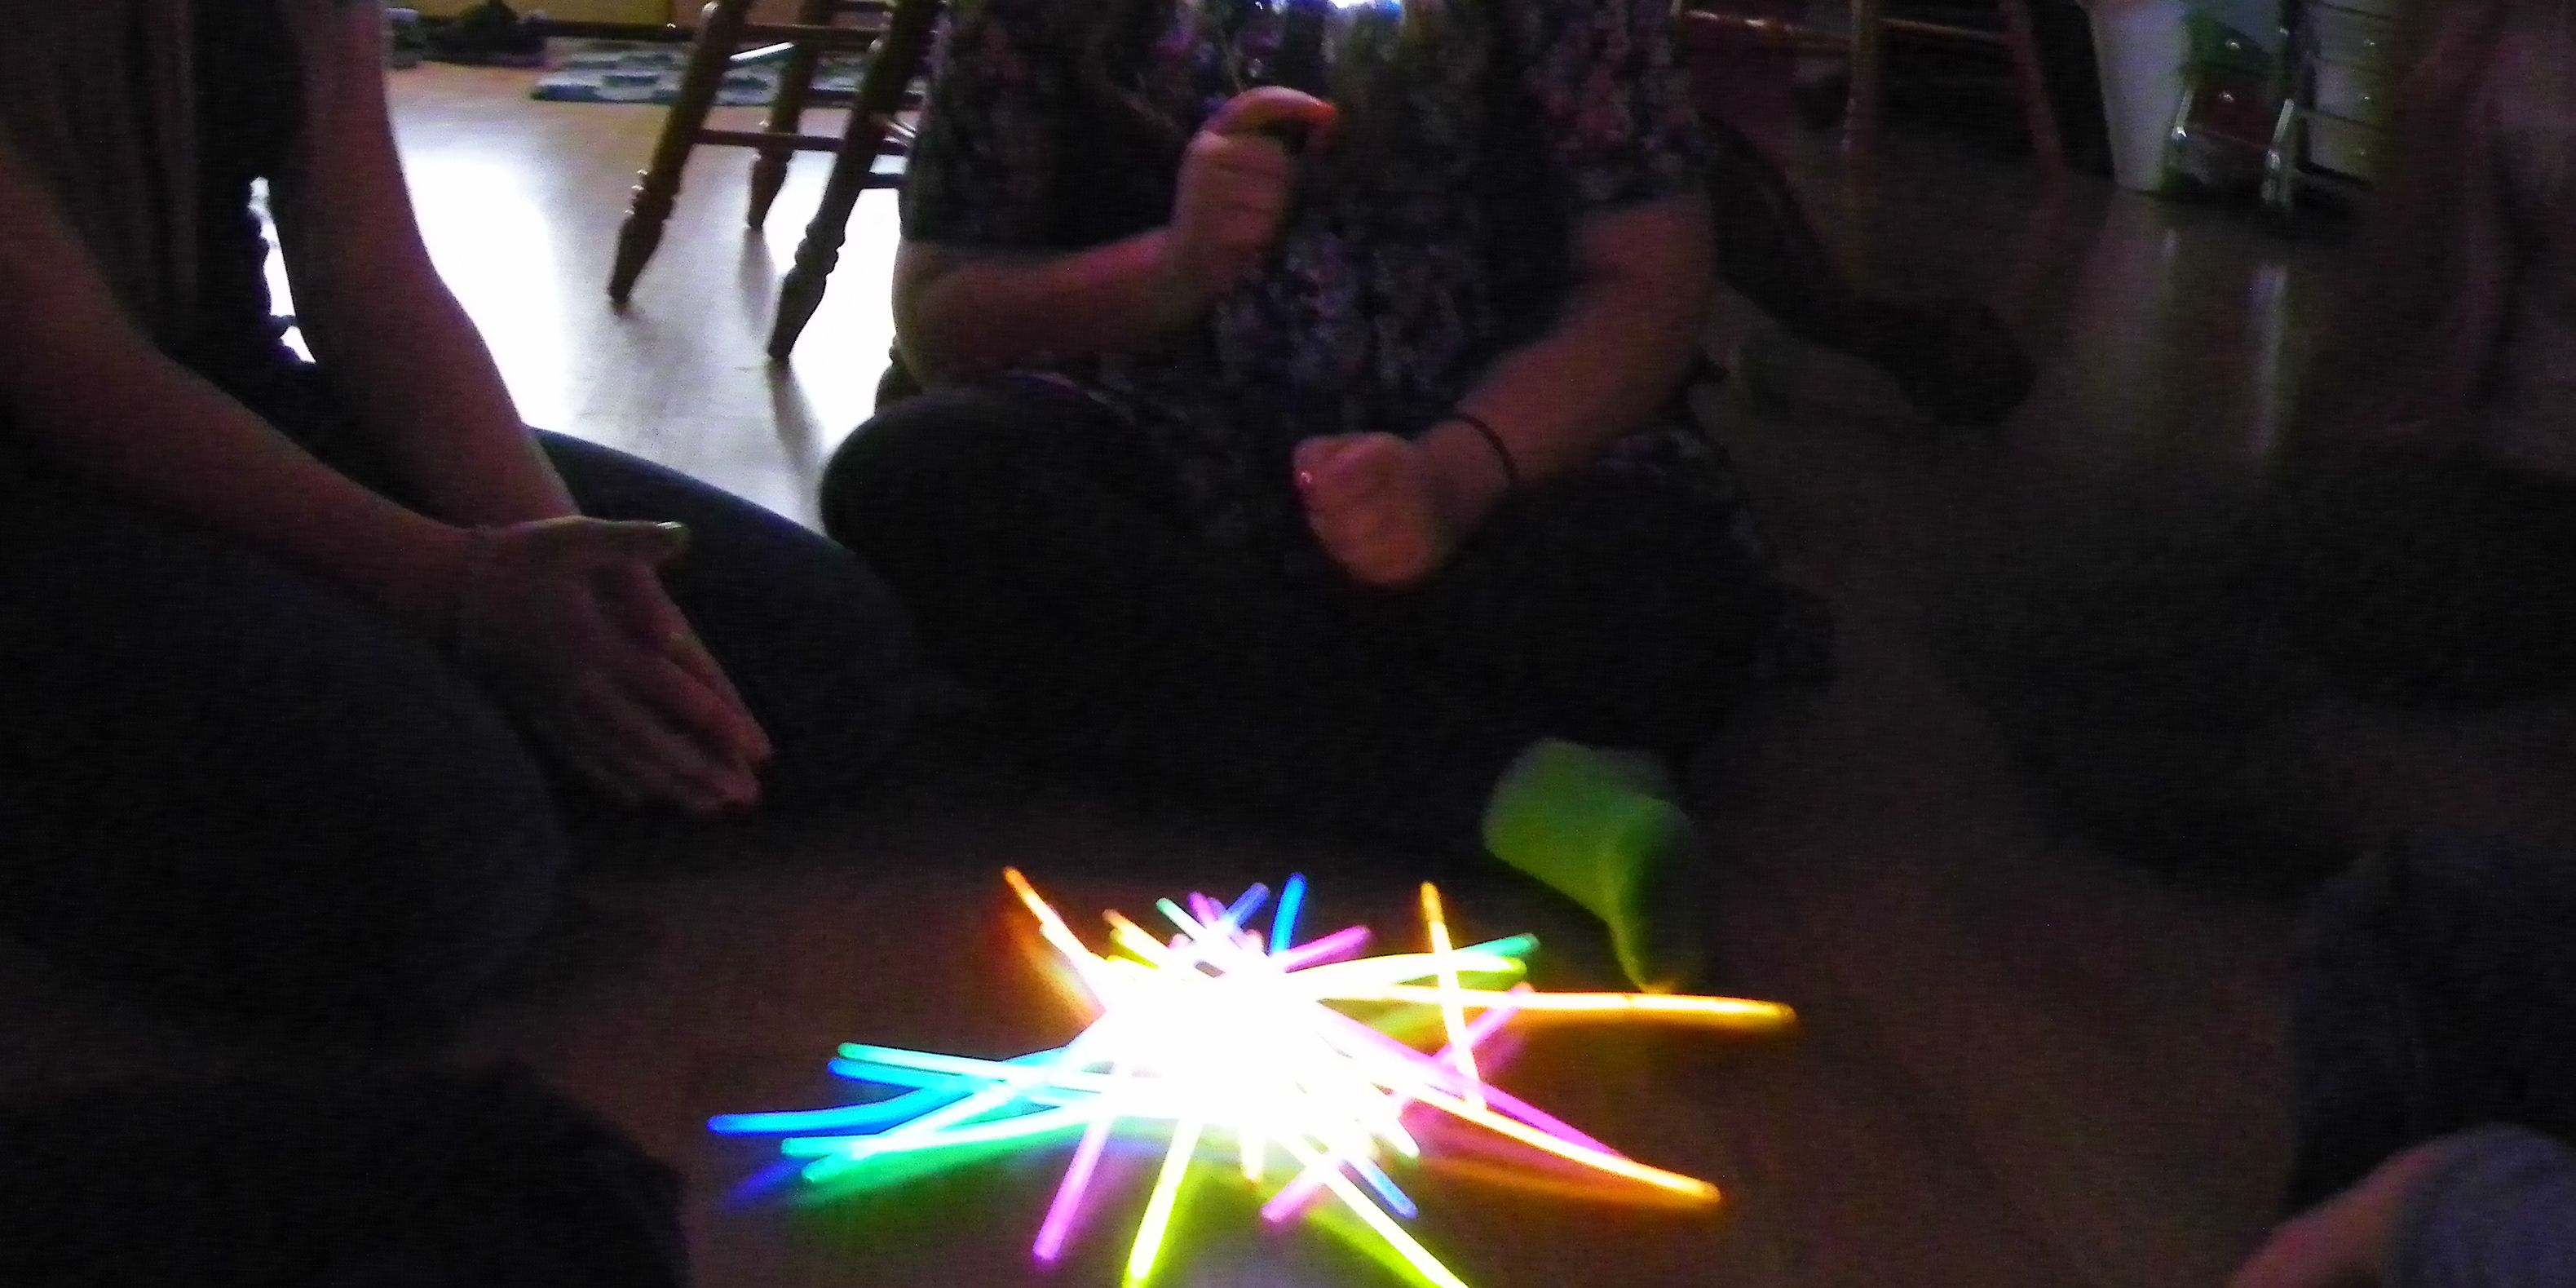 Use glow sticks for an indoor